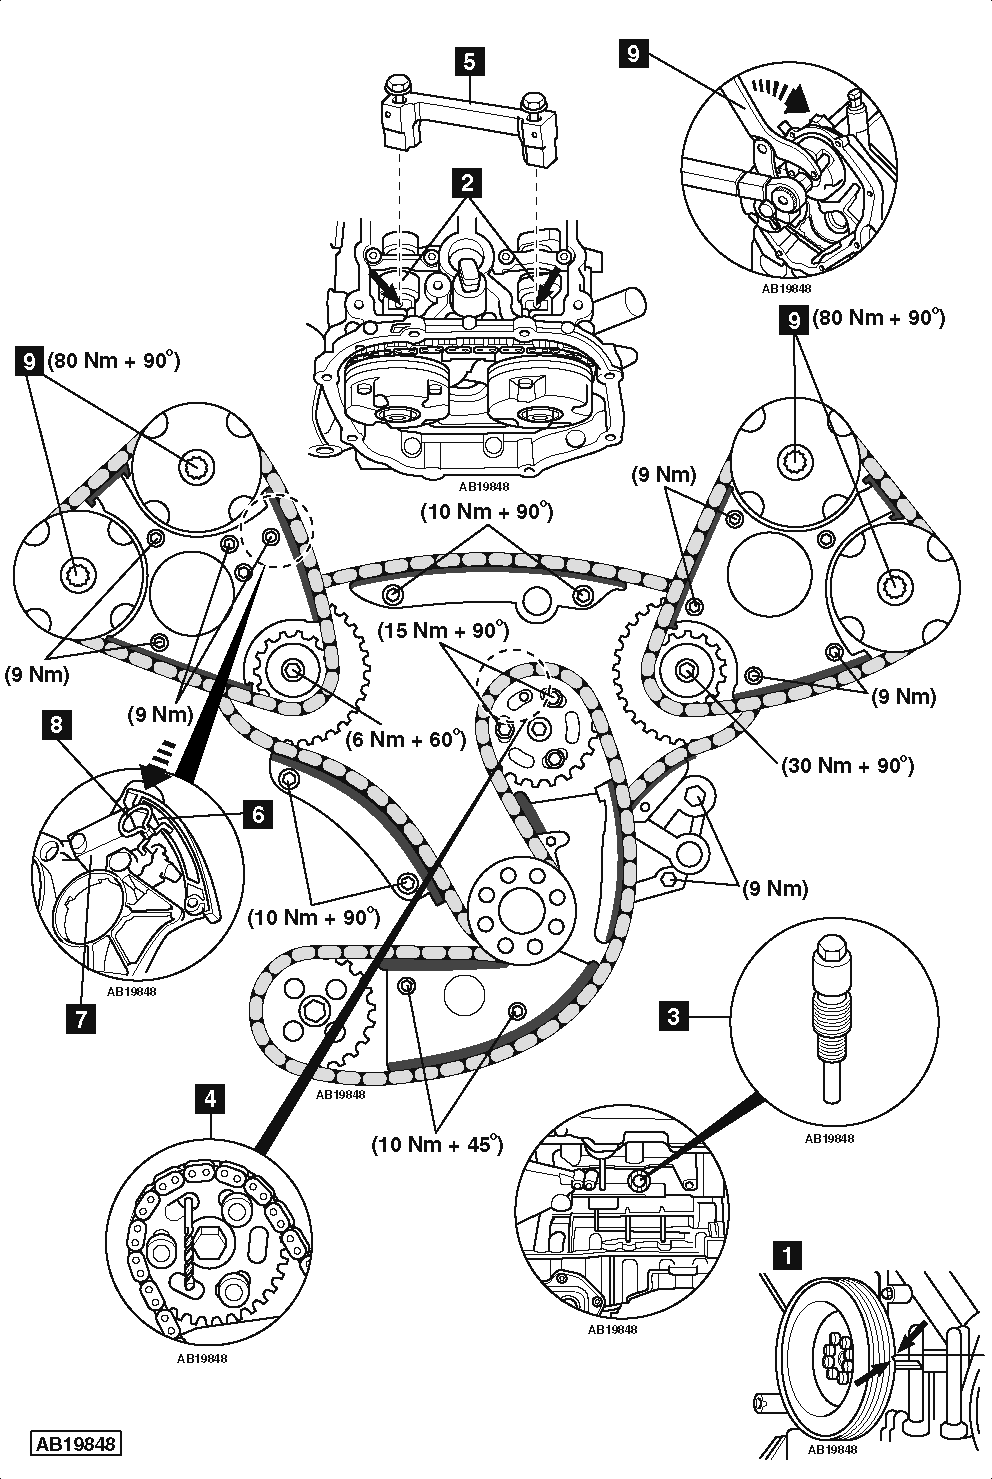 2004 Accord Wiring Diagram on fuse box location for 2002 ford explorer